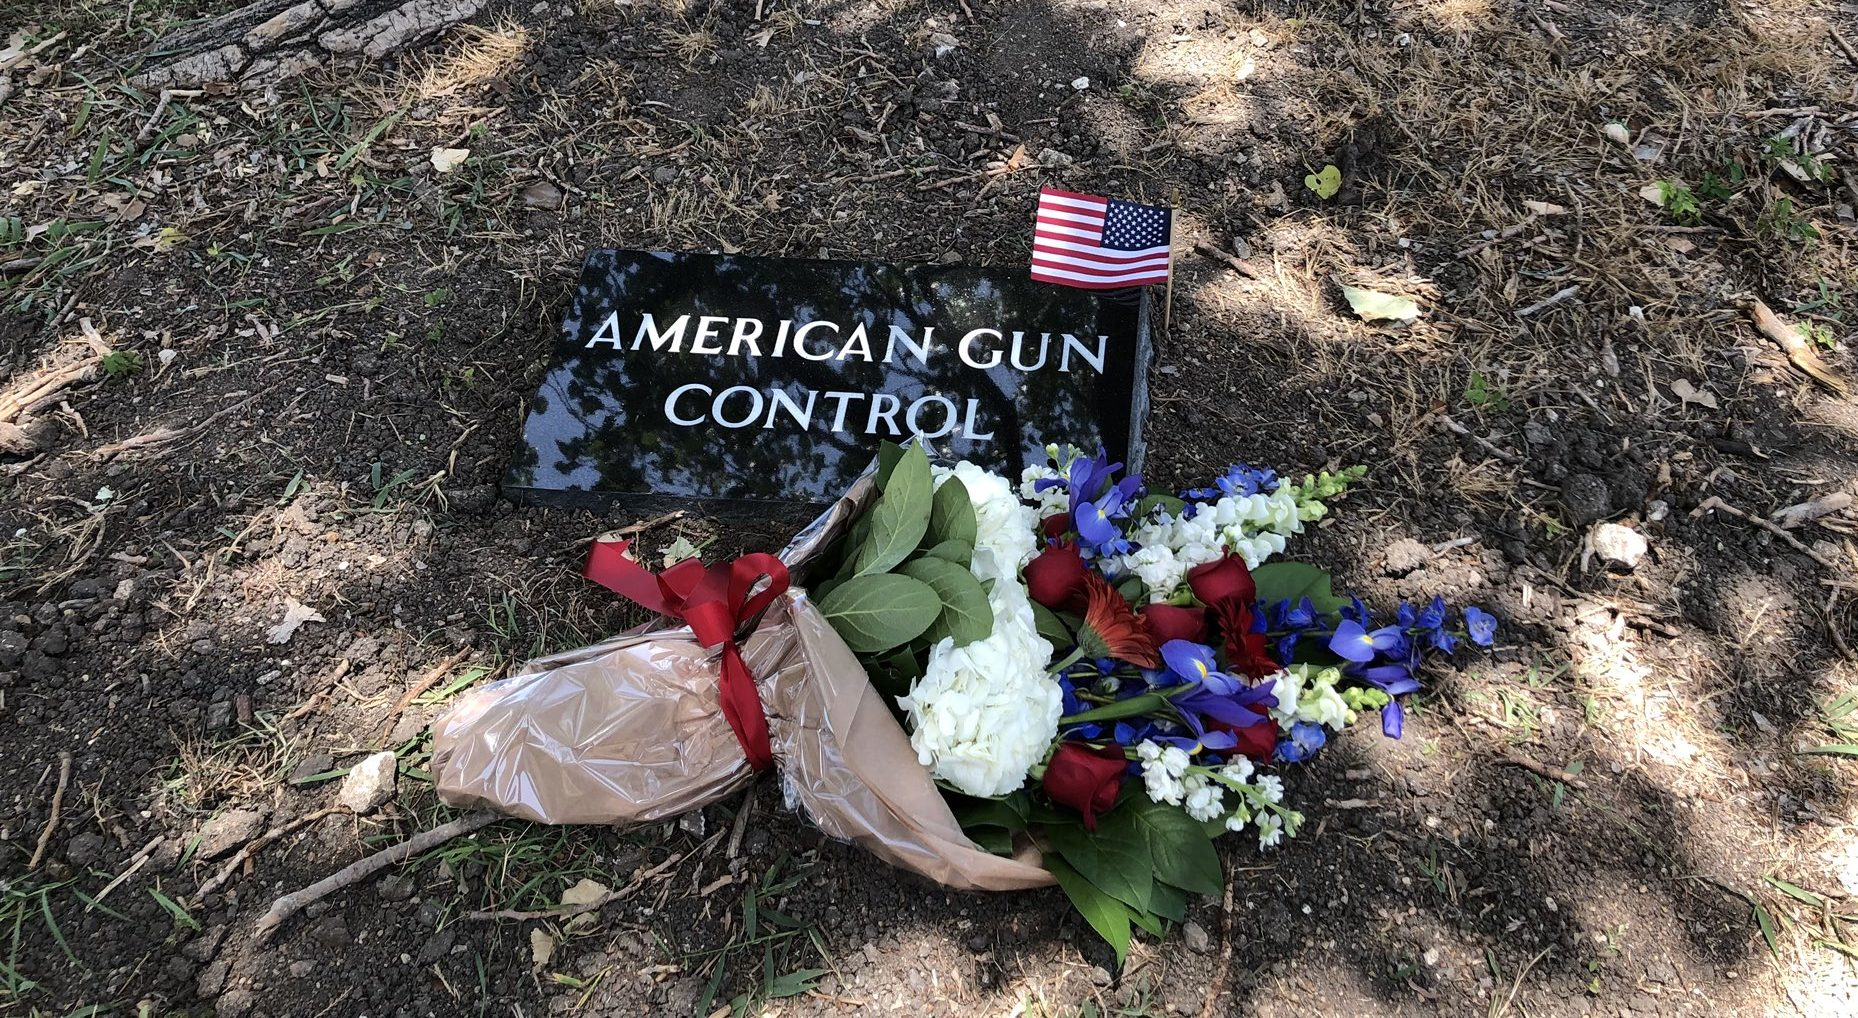 The death of American gun control